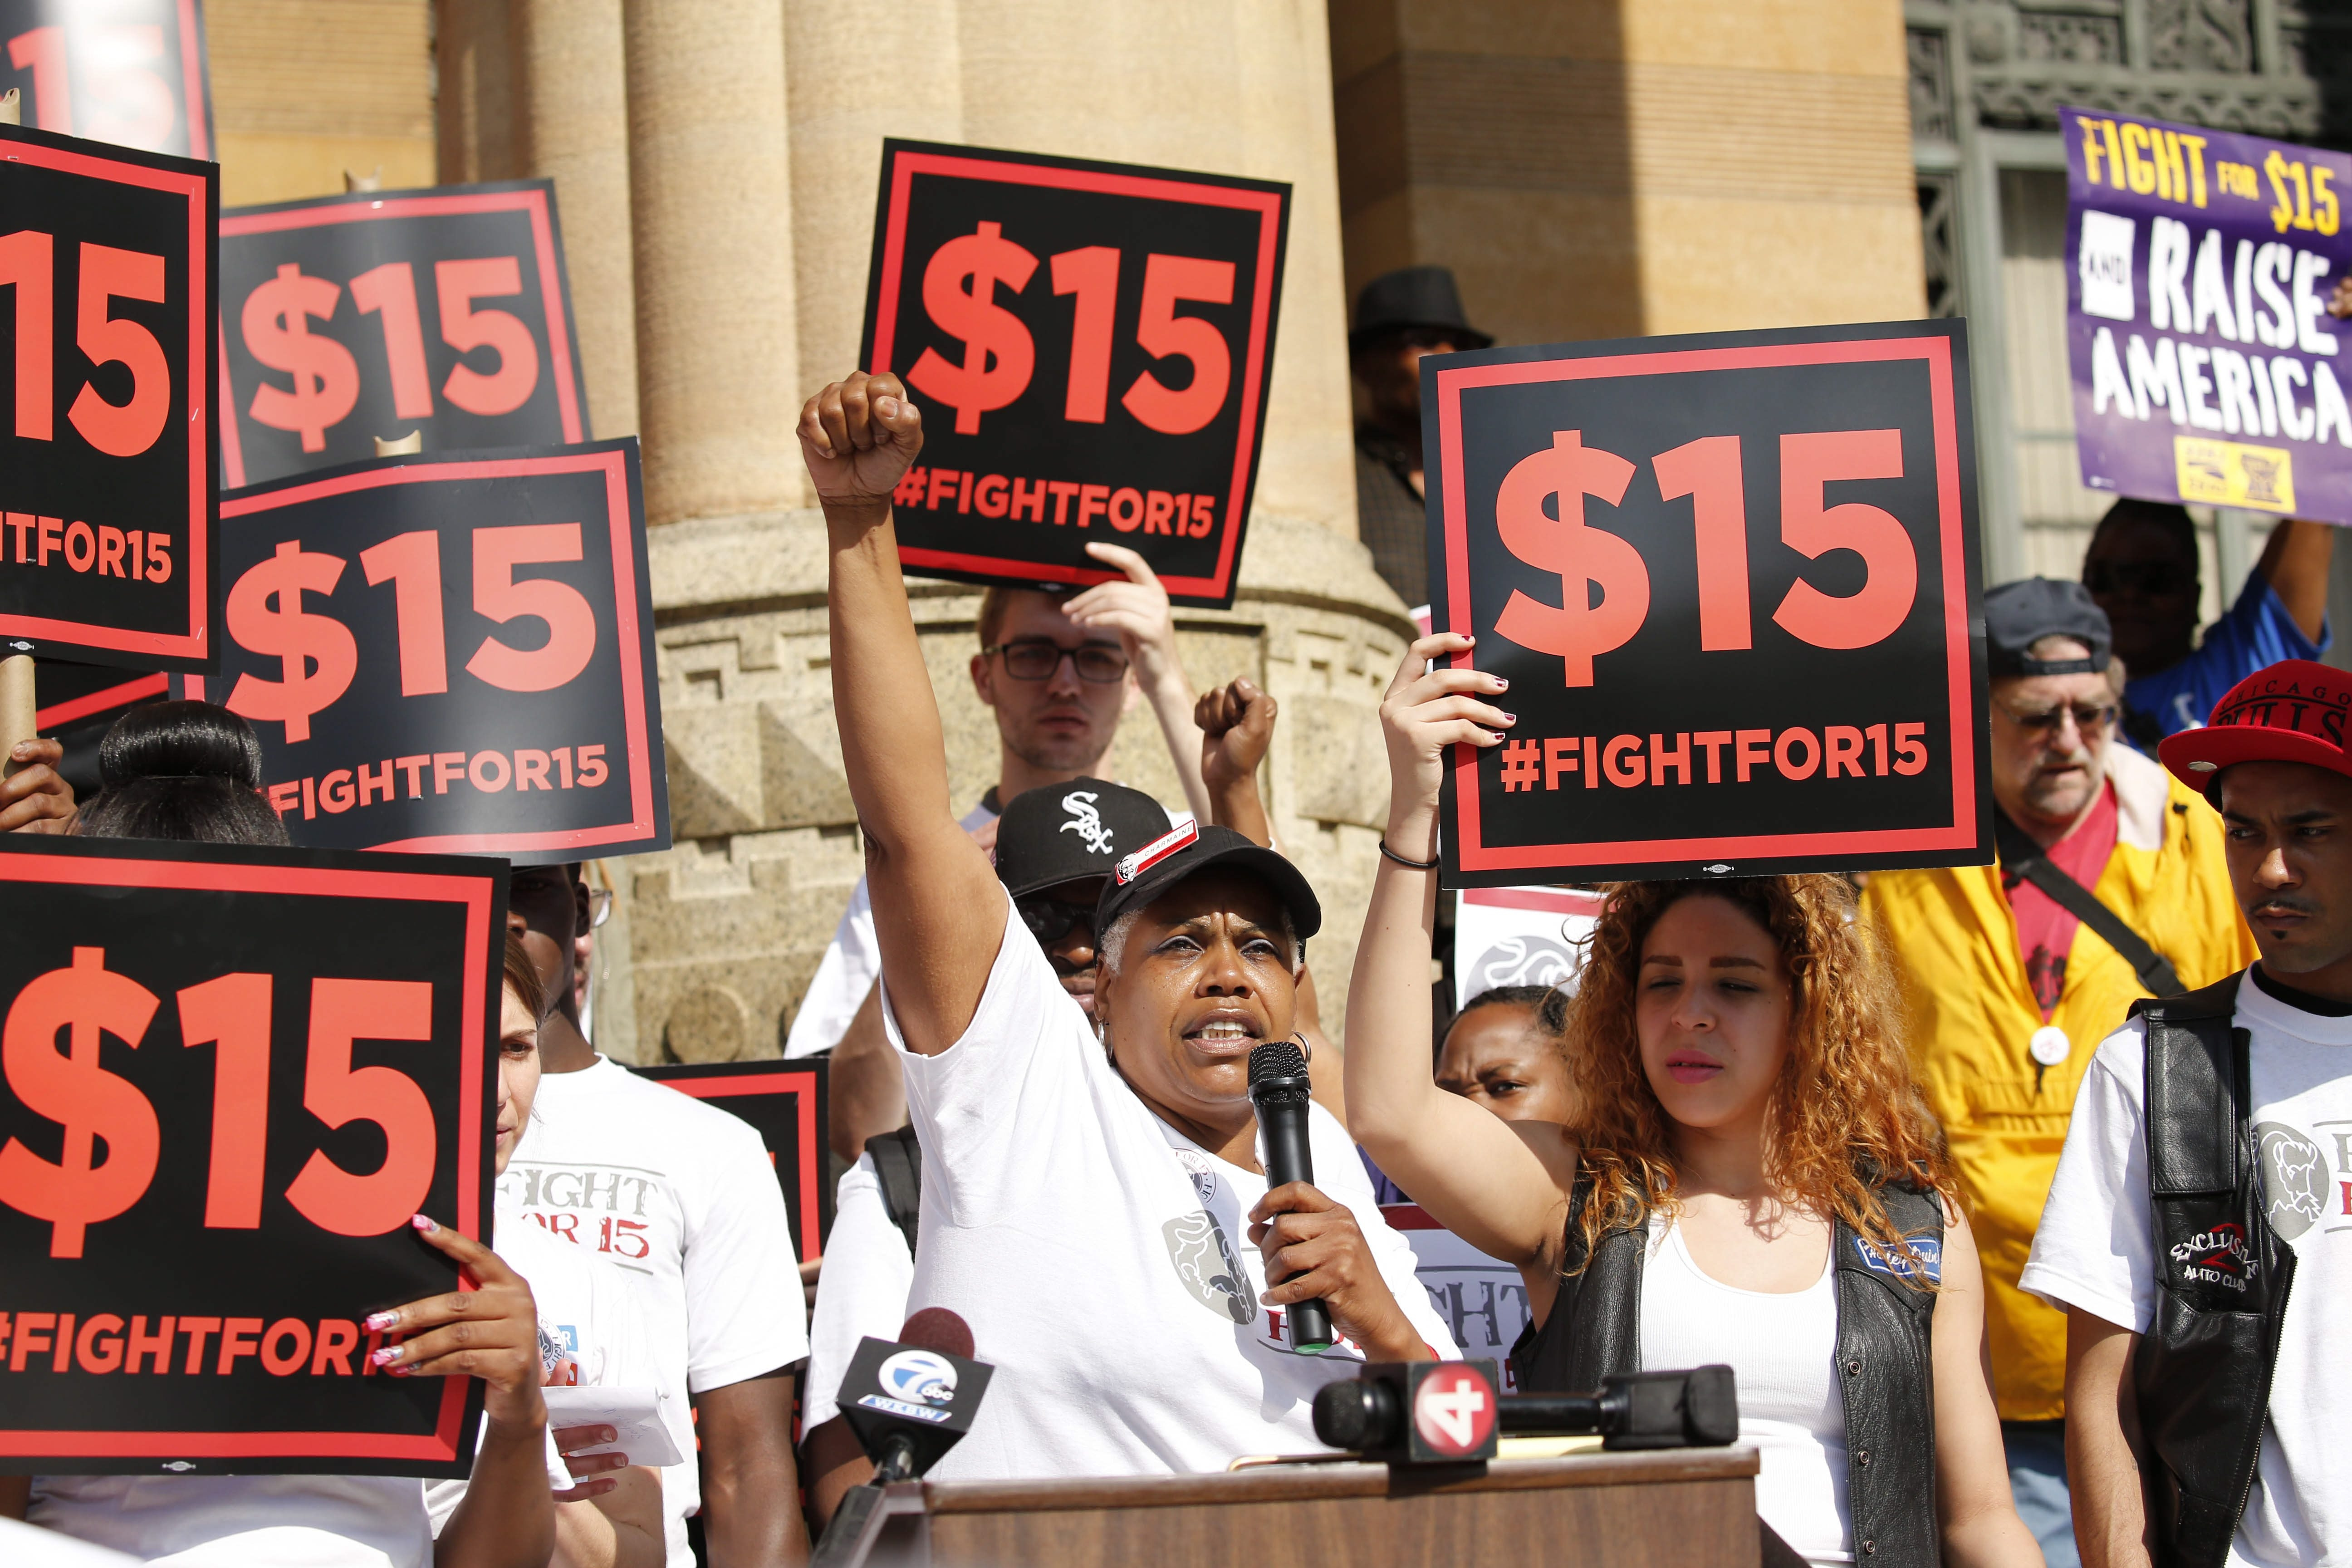 Charmaine Rookard, who works at KFC, speaks during a rally outside Buffalo City Hall to call for a $15/hour minimum wage before a hearing of the governor's wage board, Friday, June 5, 2015.  (Derek Gee/Buffalo News)